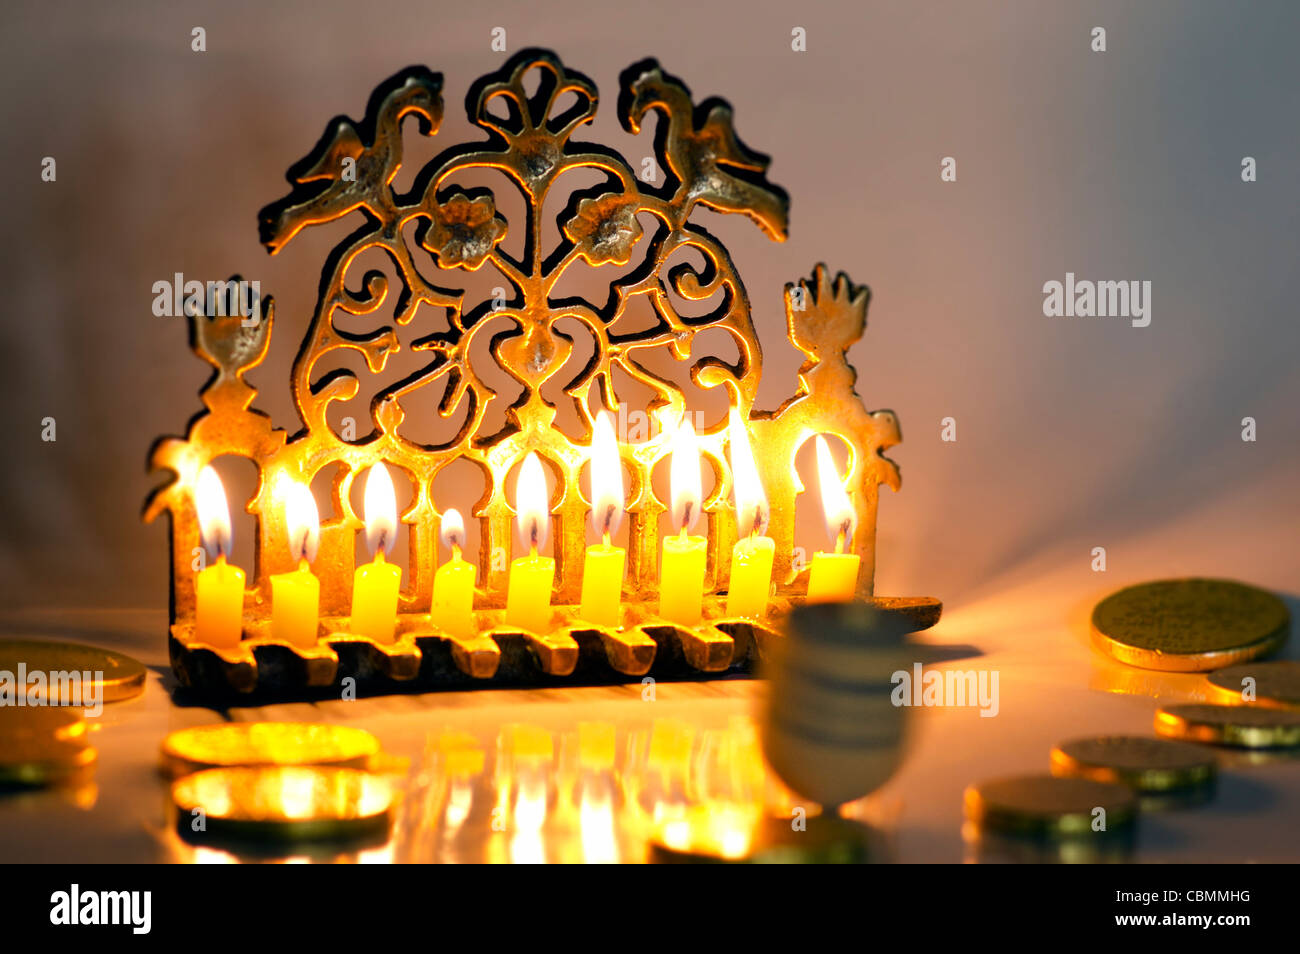 Photo of a dreidel (spinng top), gelts (candy coins) and an ancient brass menorah for the Jewish holiday of Hanukkah. - Stock Image